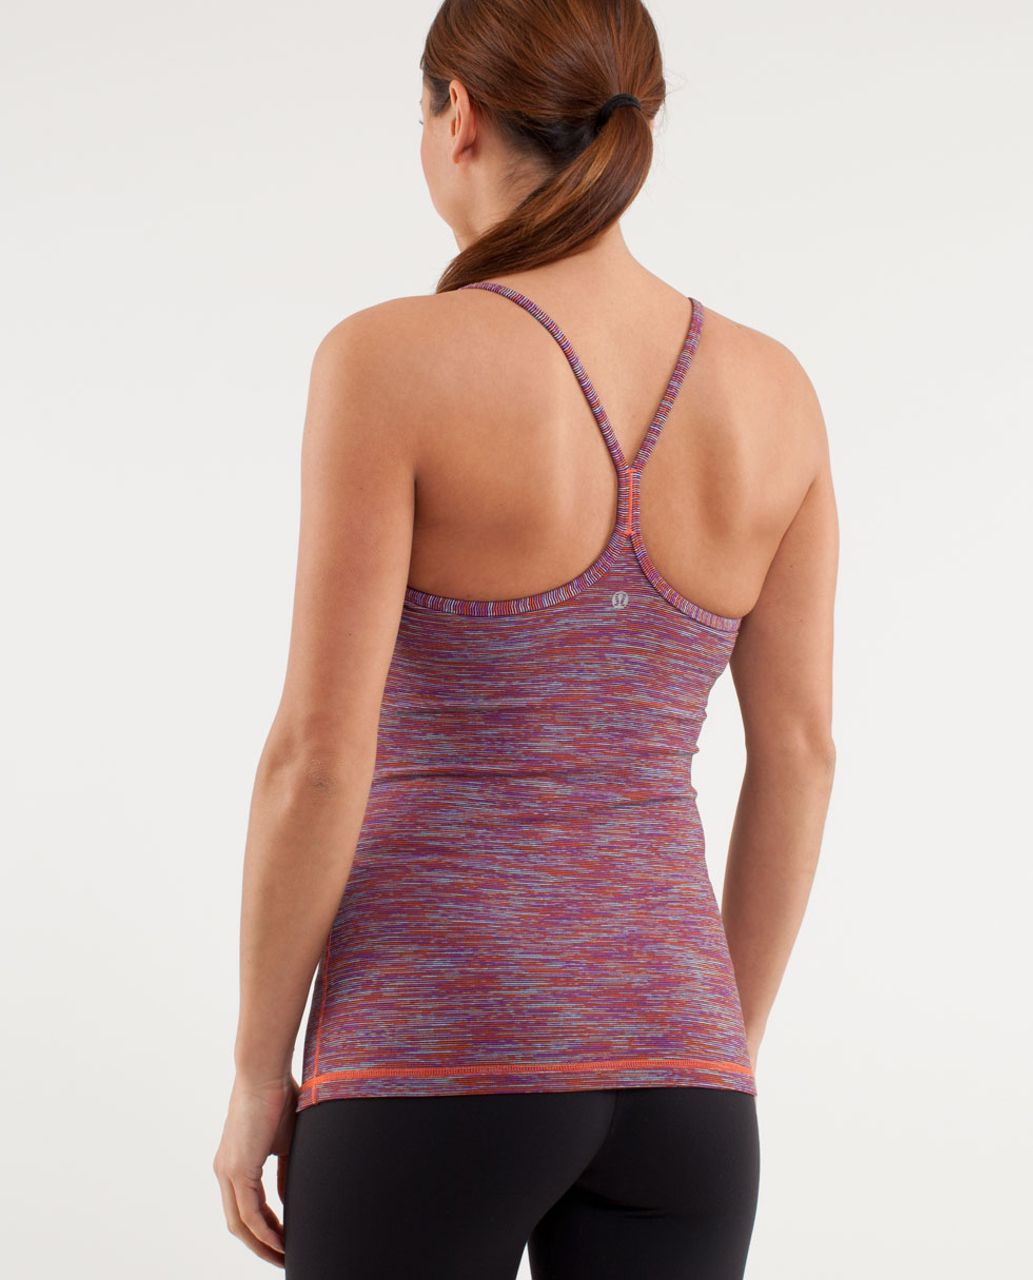 Lululemon Power Y Tank - Wee Are From Space Black March Multi